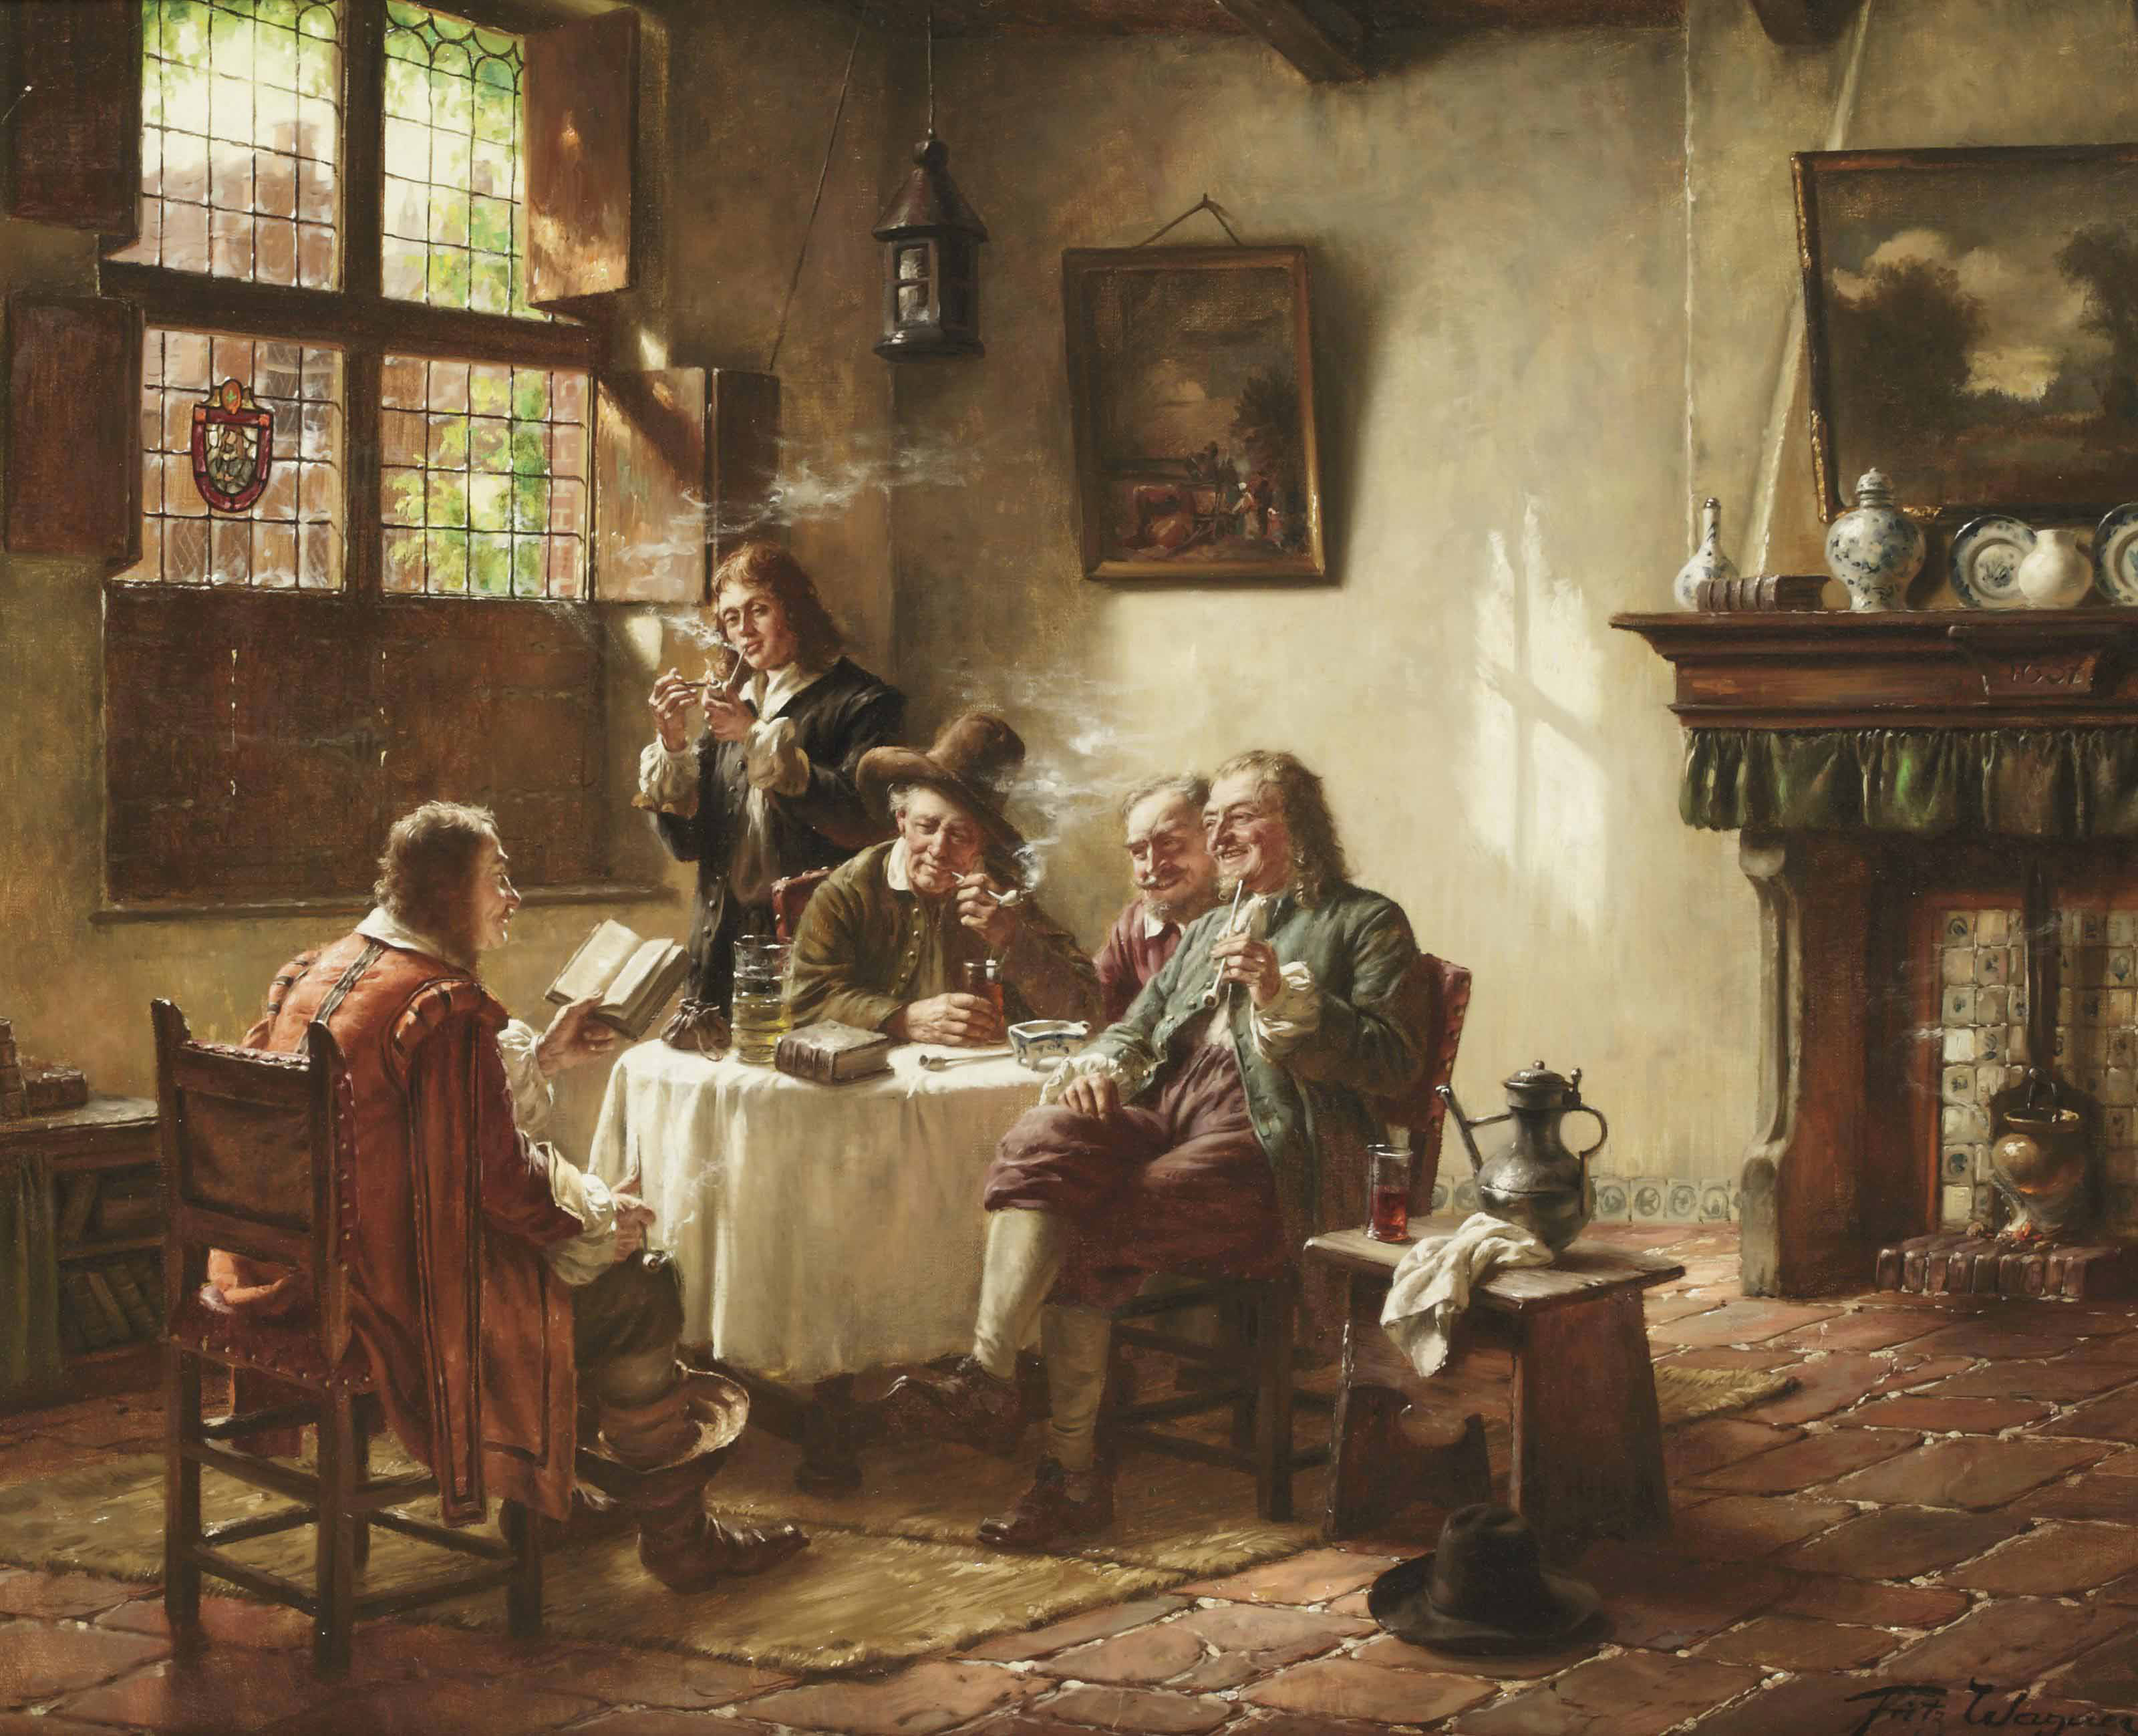 A merry company, smoking and drinking in a sunlit interior